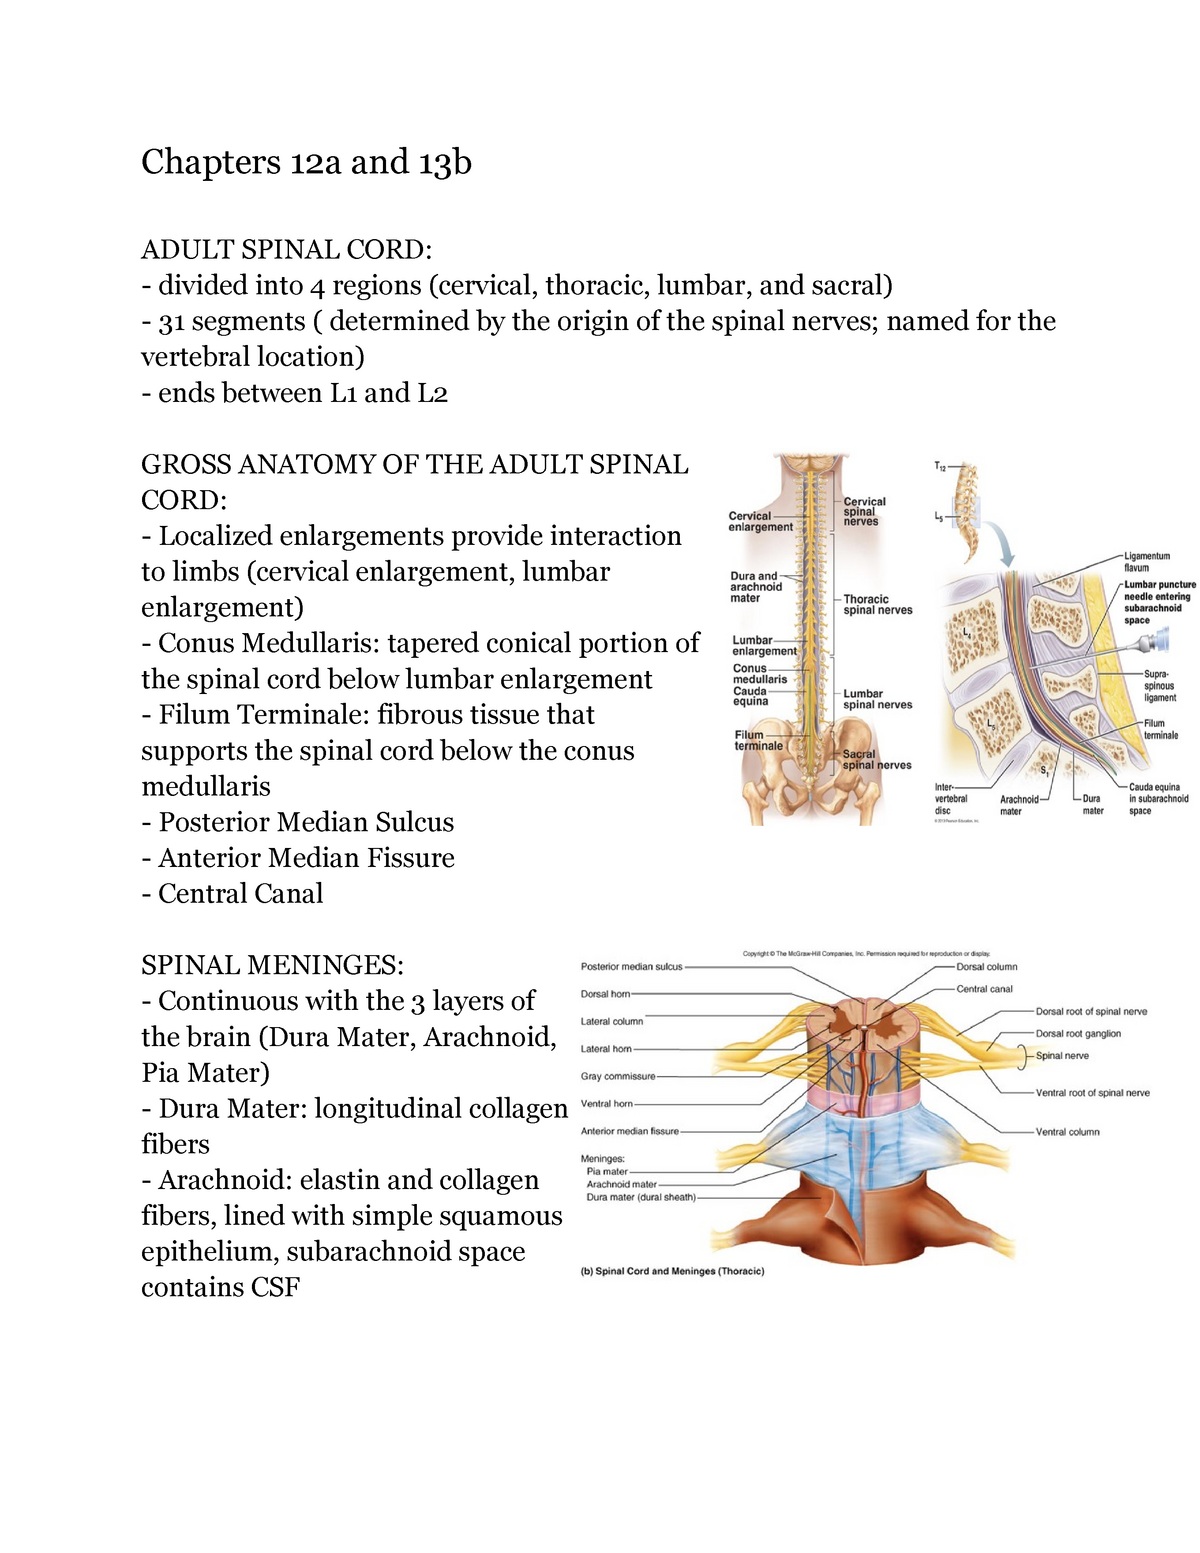 A P Ch 12 13 Notes Phsl P 263 Studocu Lateral extensions of the pia mater and arachnoid mater between the dorsal and ventral roots attach to the dura mater and are called denticulate ligaments. a p ch 12 13 notes phsl p 263 studocu